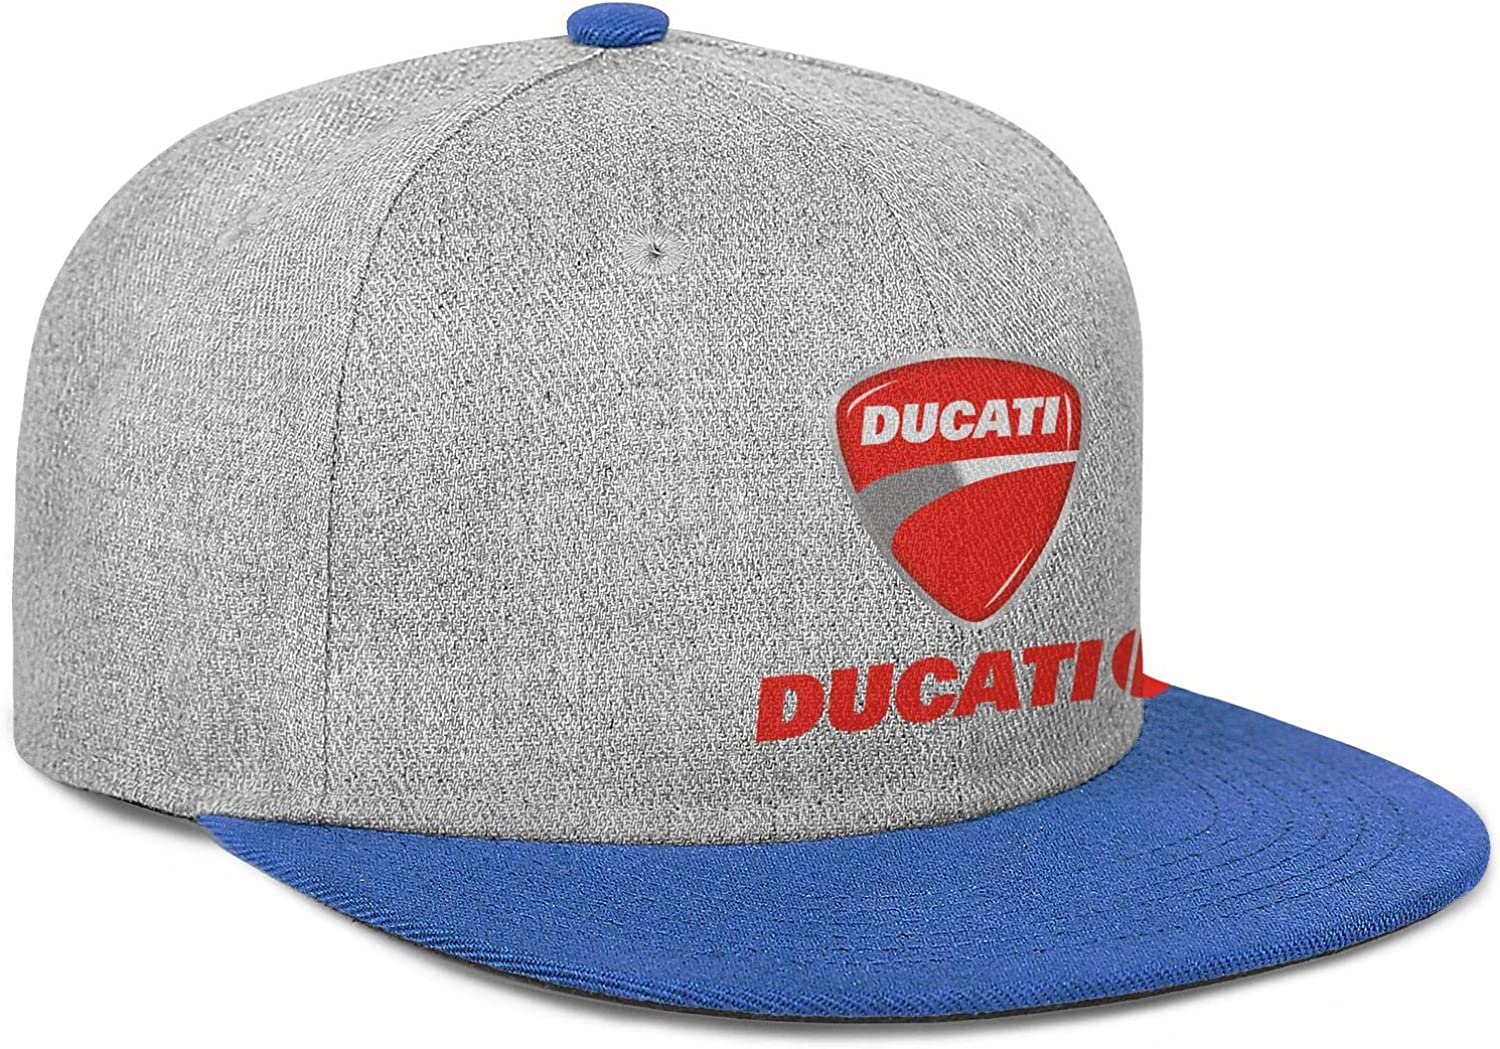 Baseball Cap Popular Hip Hop Caps Sport Hat Cool Snapback Hat Mens Trucker Hats Man Mens Ducati-Motorcycle-Logo